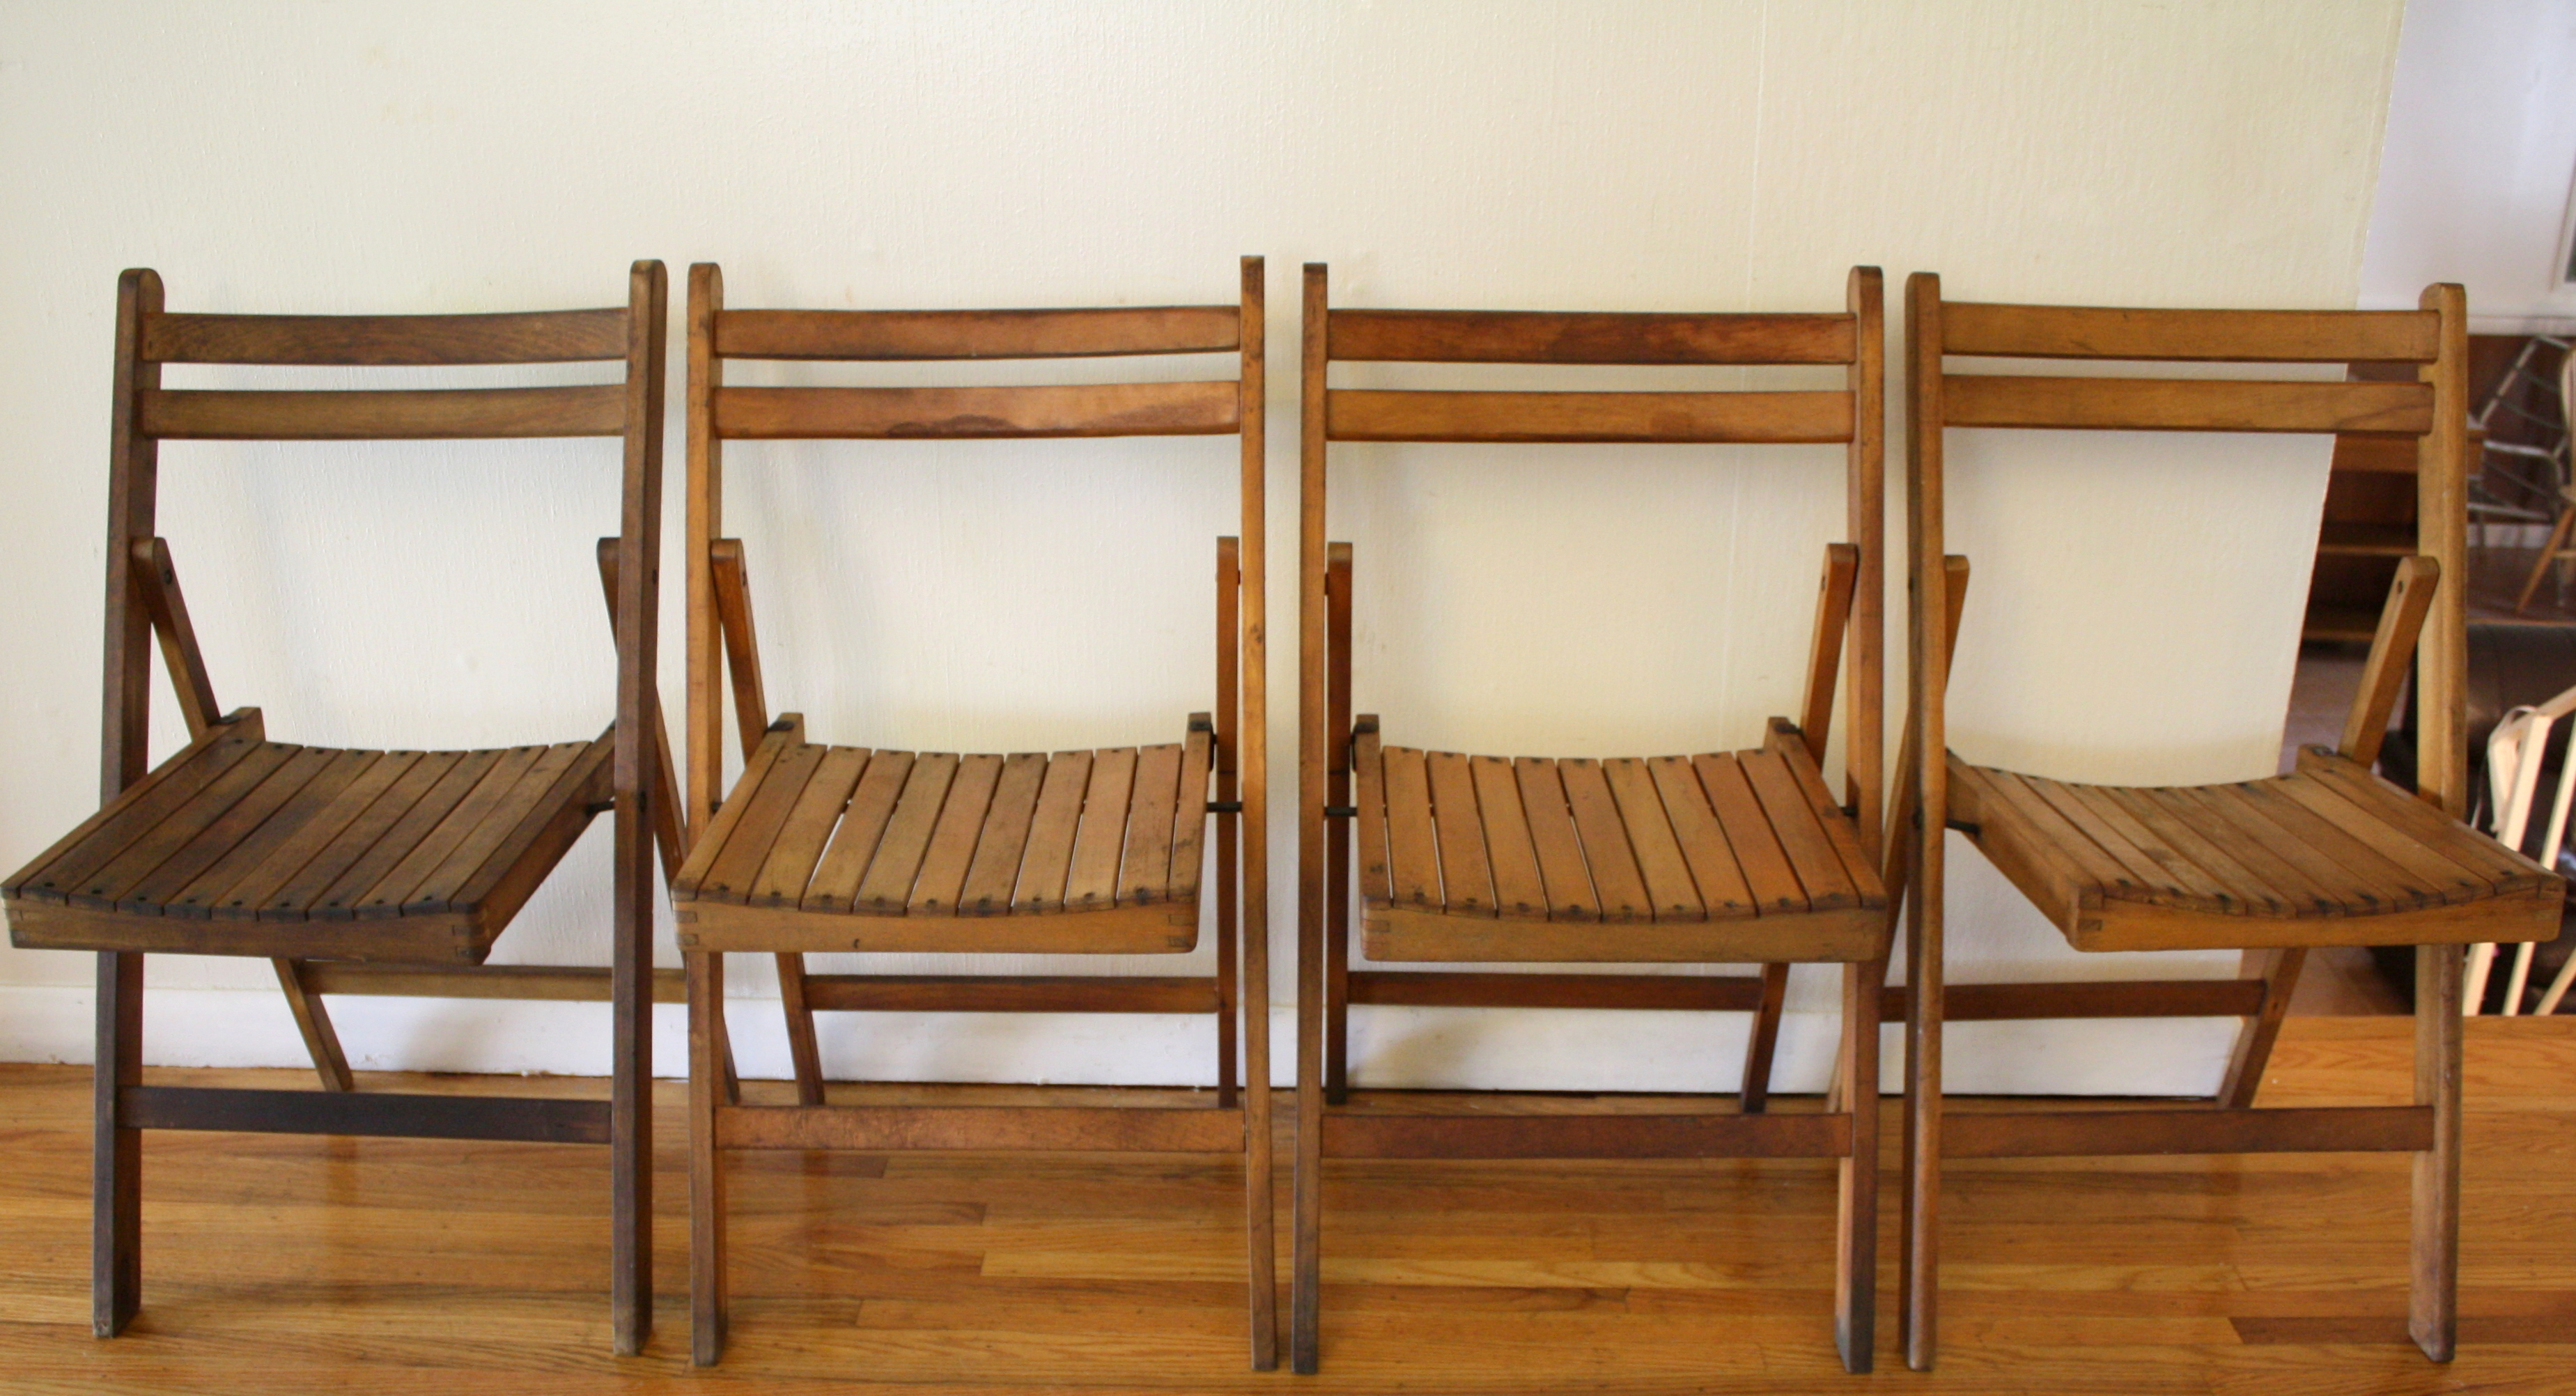 Set Of 4 Antique Slatted Folding Chairs Picked Vintage